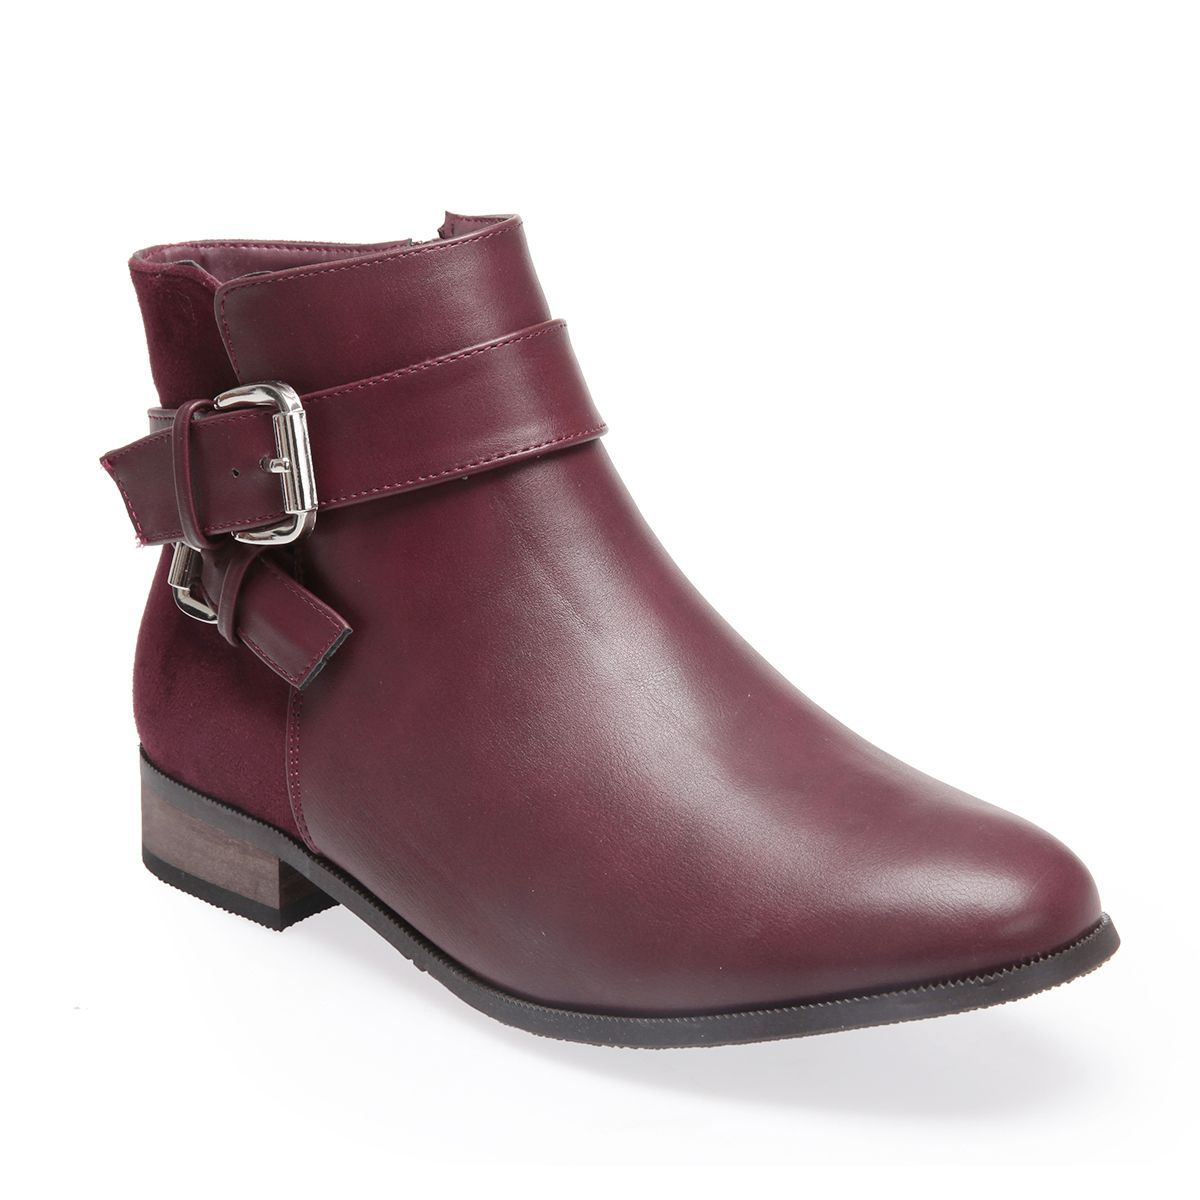 La Modeuse Bottines basses bordeaux boucles décoratives Rouge - Chaussures Bottine Femme